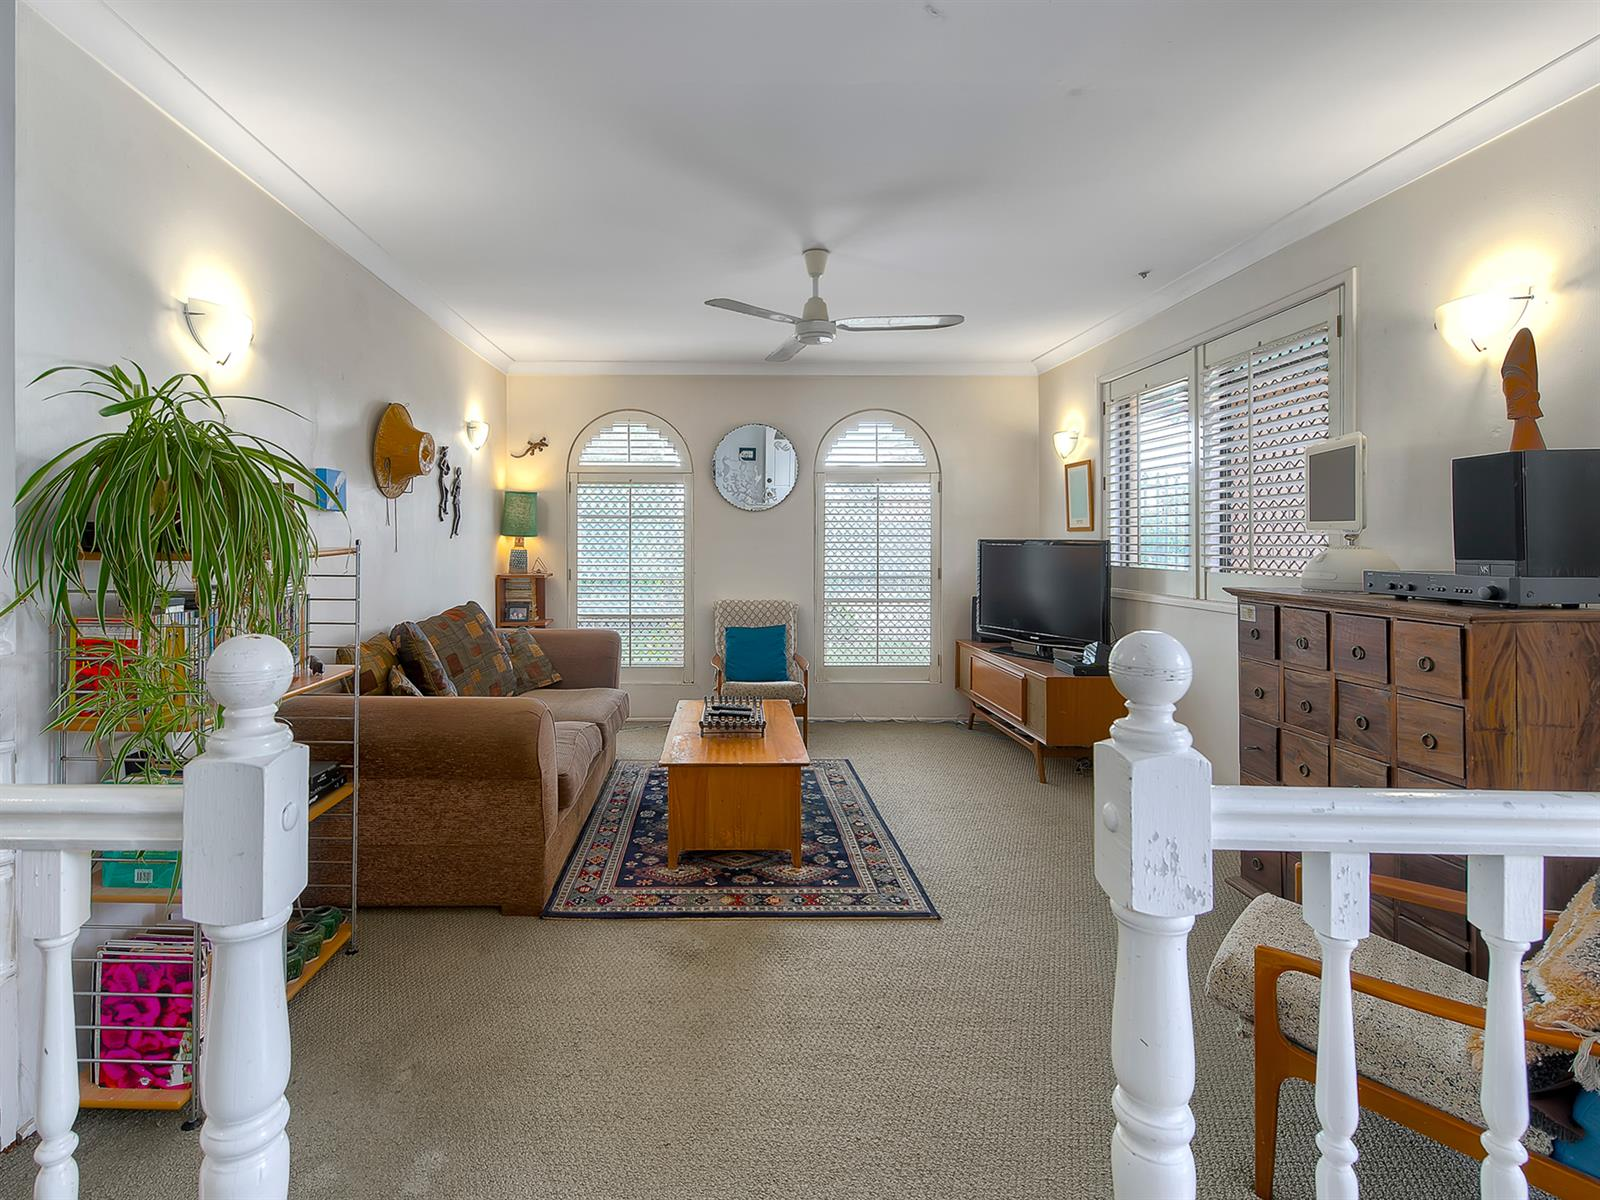 25 Ancona St ROCHEDALE SOUTH QLD 4123 Image 1